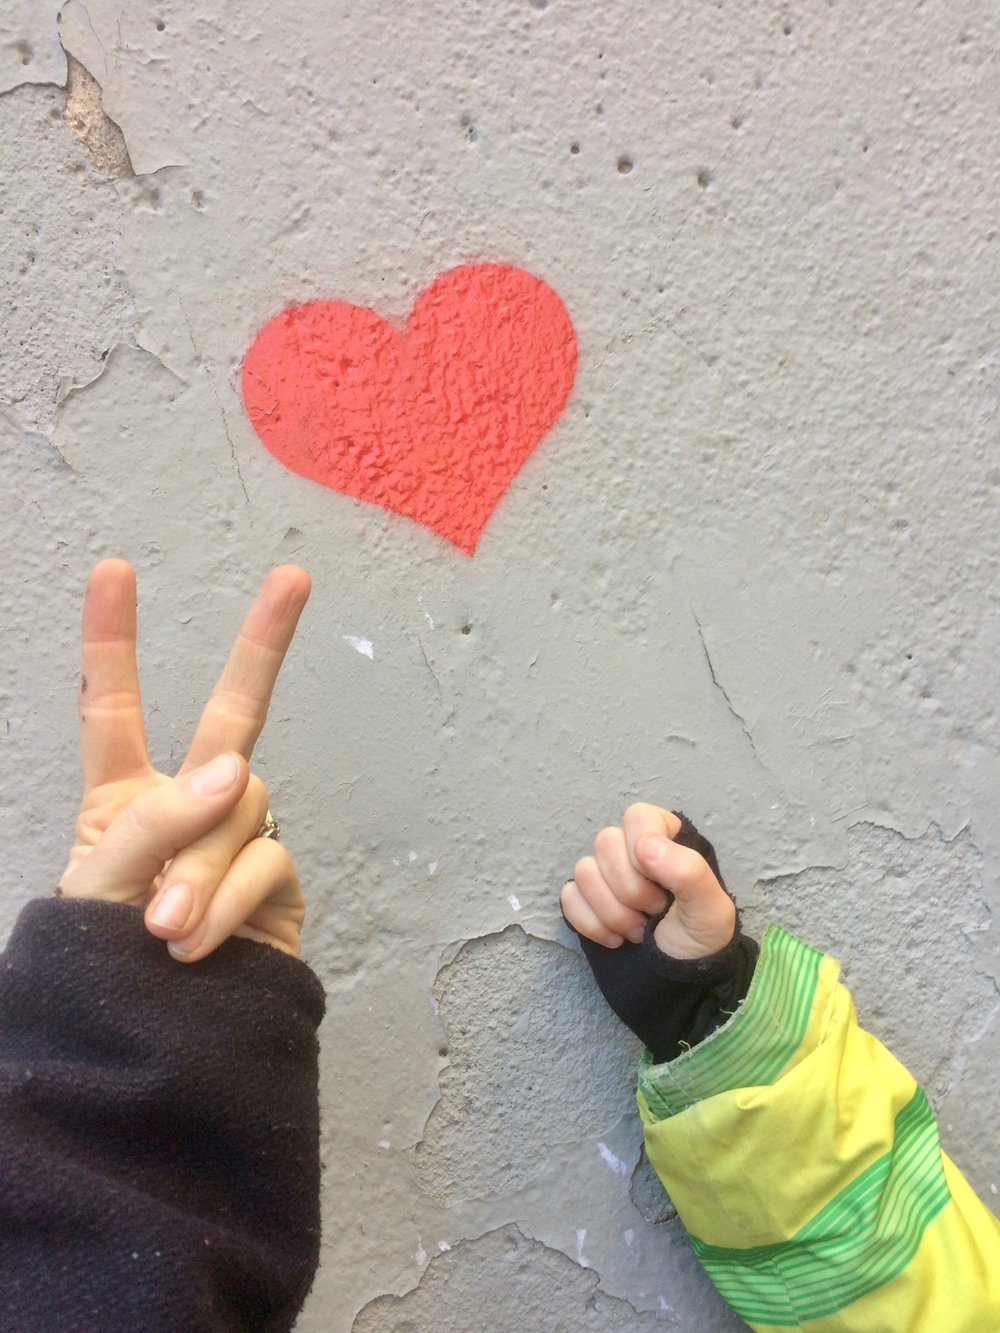 peace_love_resistance_Paris_December_2017.jpg